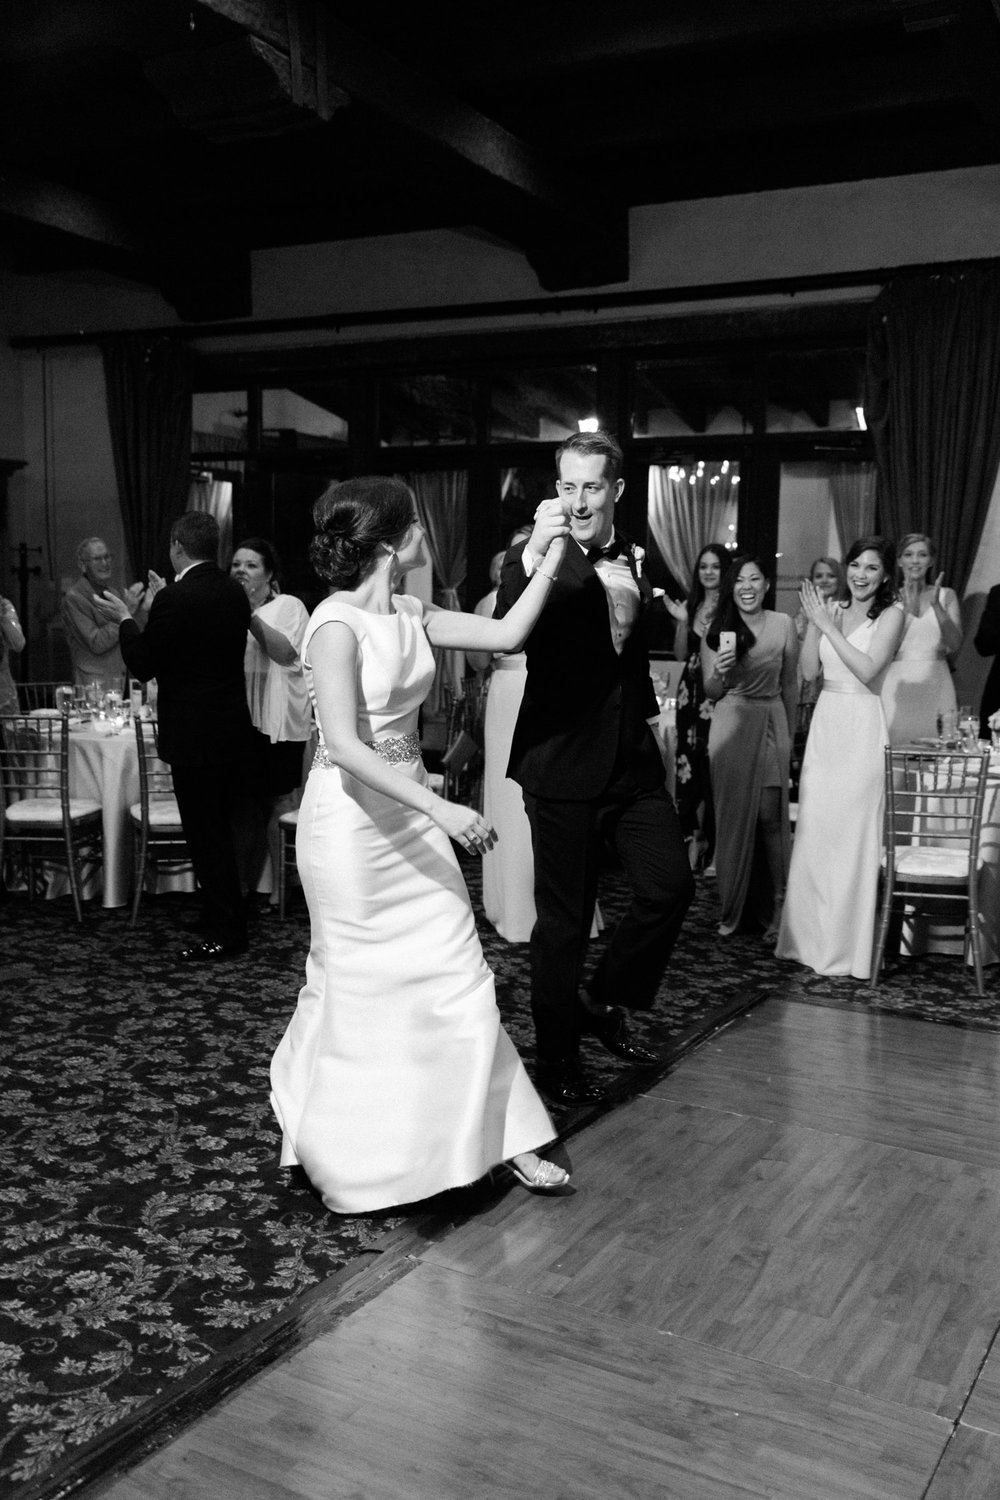 Bride and groom walking onto the dance floor for their first dance